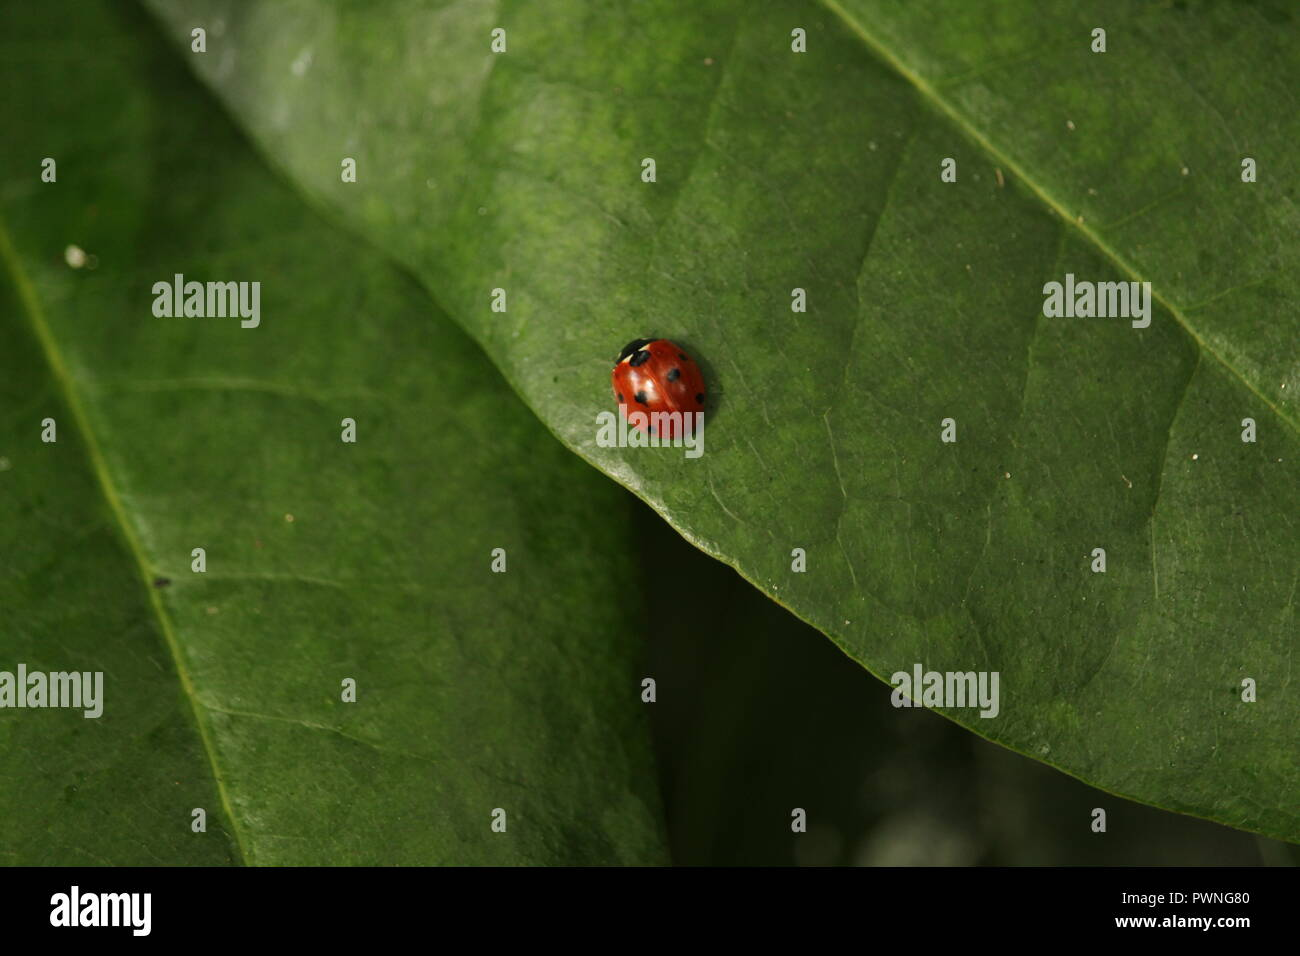 Autumn scenes - a seven-spotted ladybird on the glossy leaf of a garden shrub. Rocio de Marigny / Alamy - Stock Image